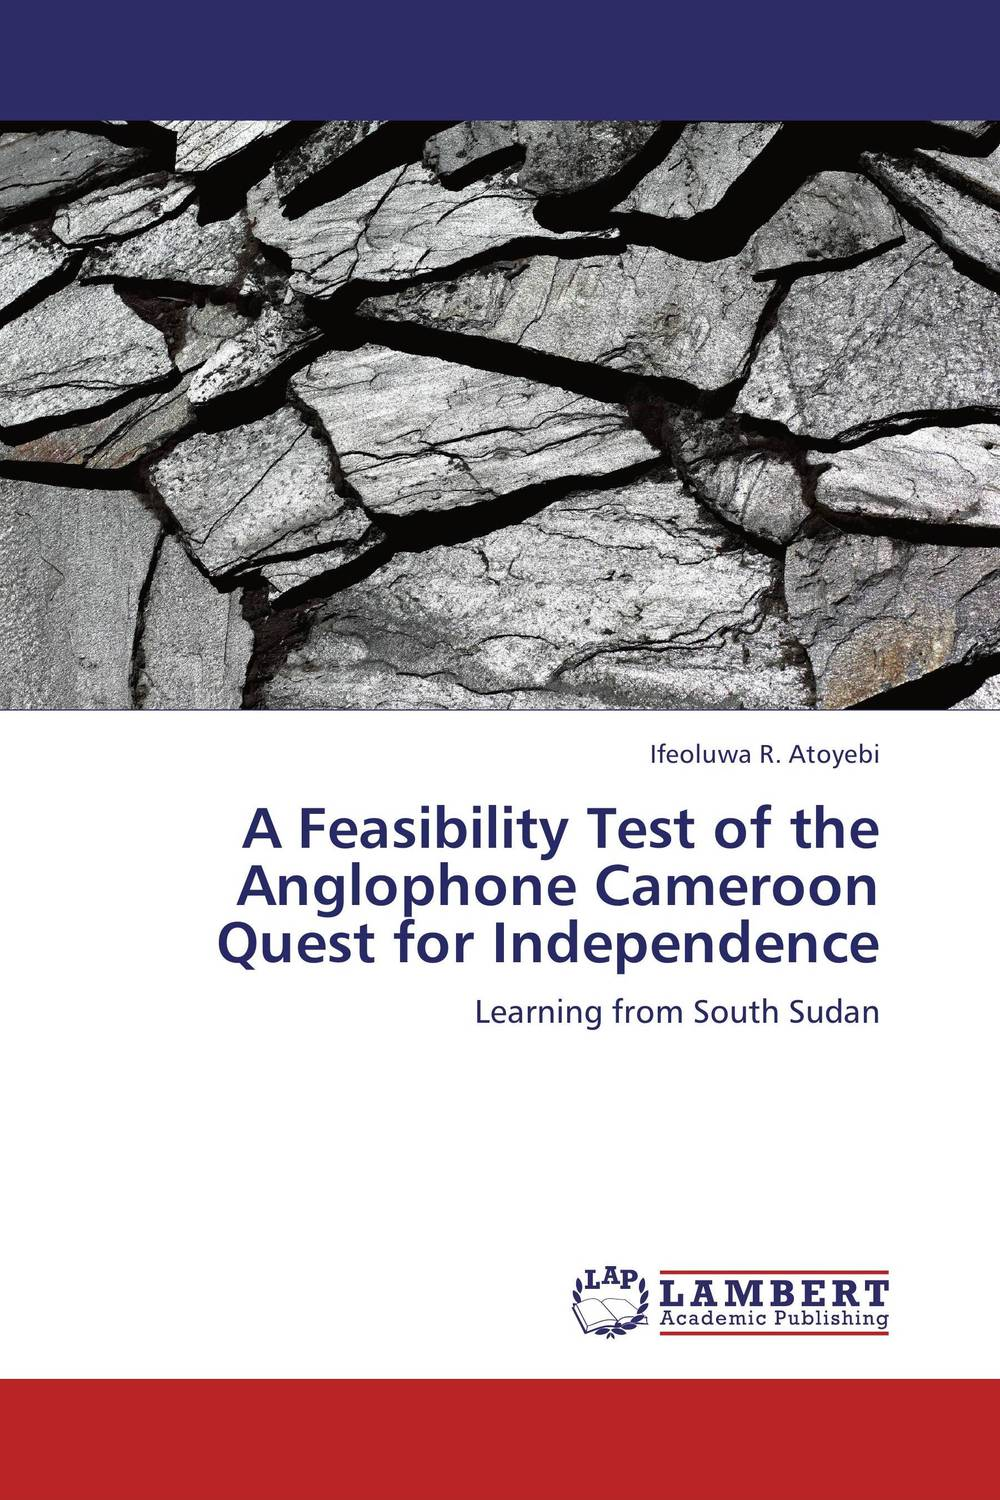 A Feasibility Test of the Anglophone Cameroon Quest for Independence morgan rice a quest of heroes